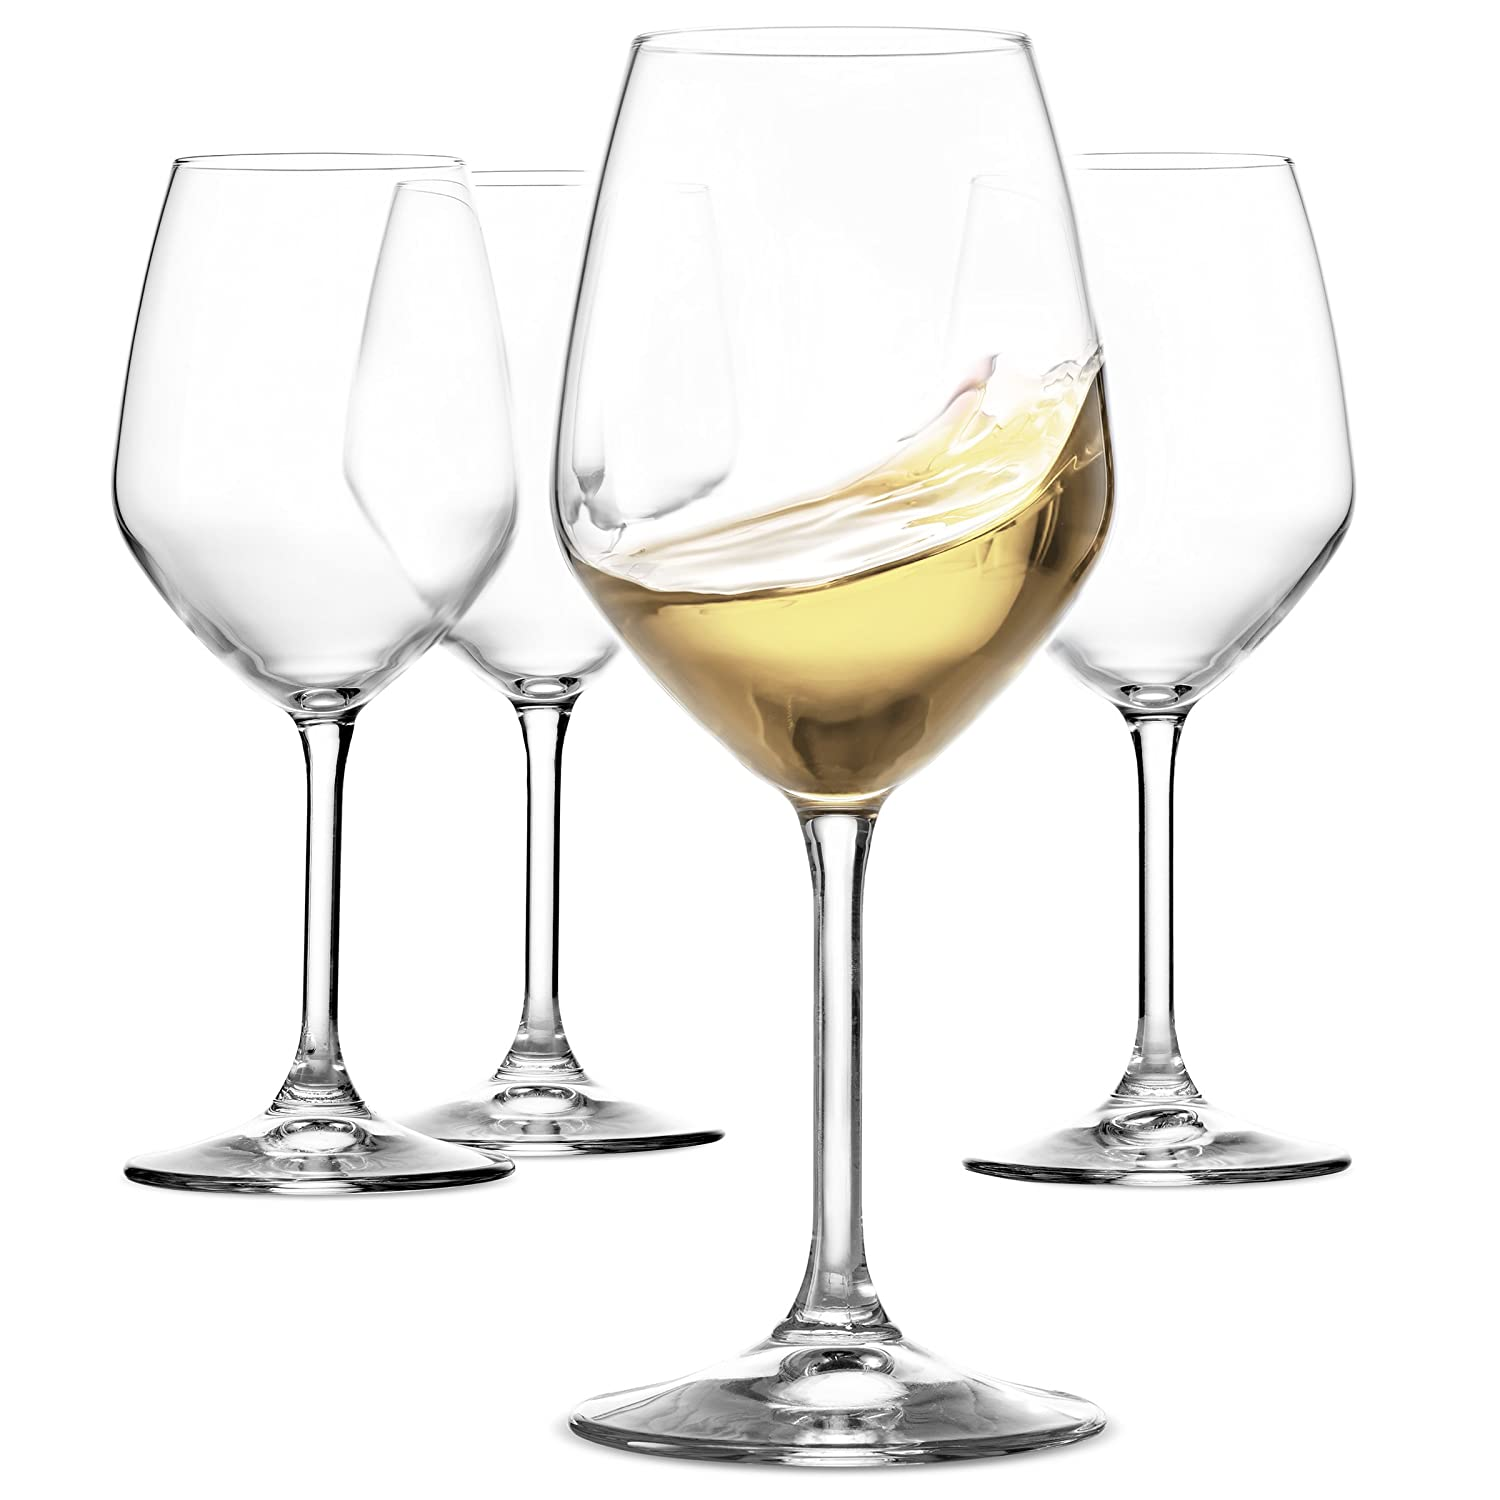 Paksh Novelty Italian White Wine Glasses - 15 Ounce - Lead Free - Shatter Resistant - Wine Glass Set of 4, Clear PN-W410